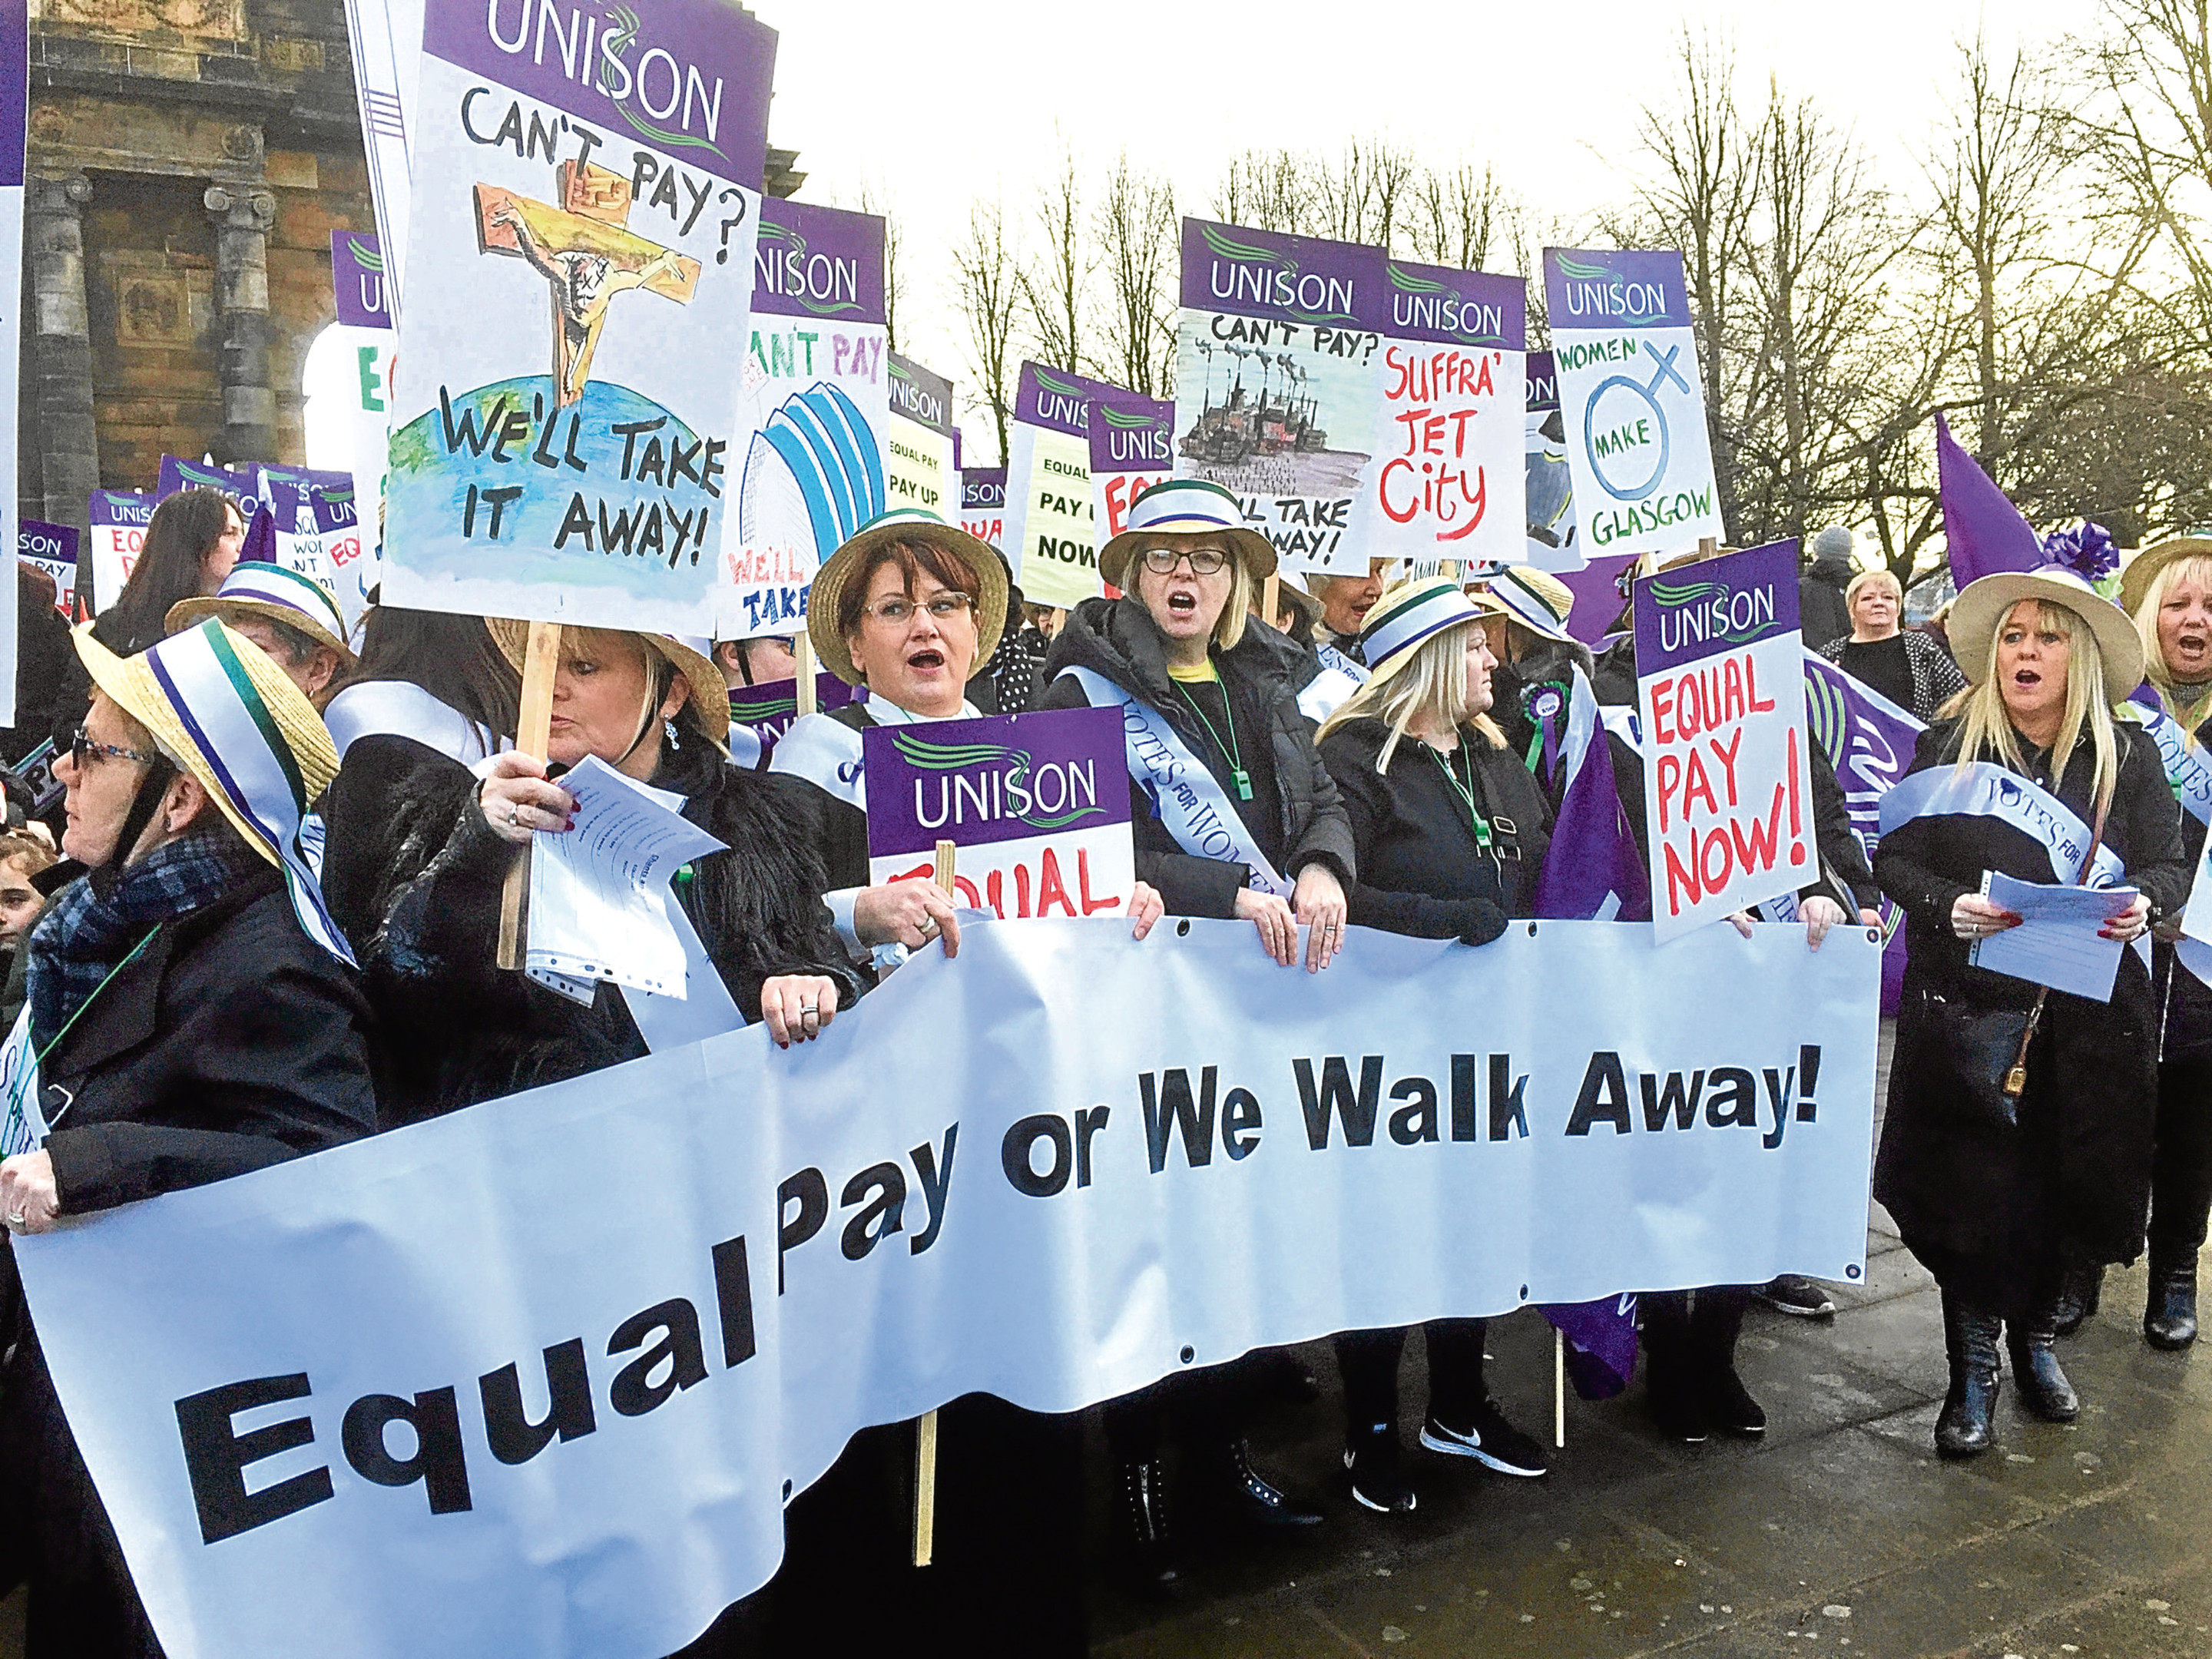 Hundreds of women, some dressed as suffragettes, march through Glasgow calling for equal pay from the city council (Lucinda Cameron / PA Wire)